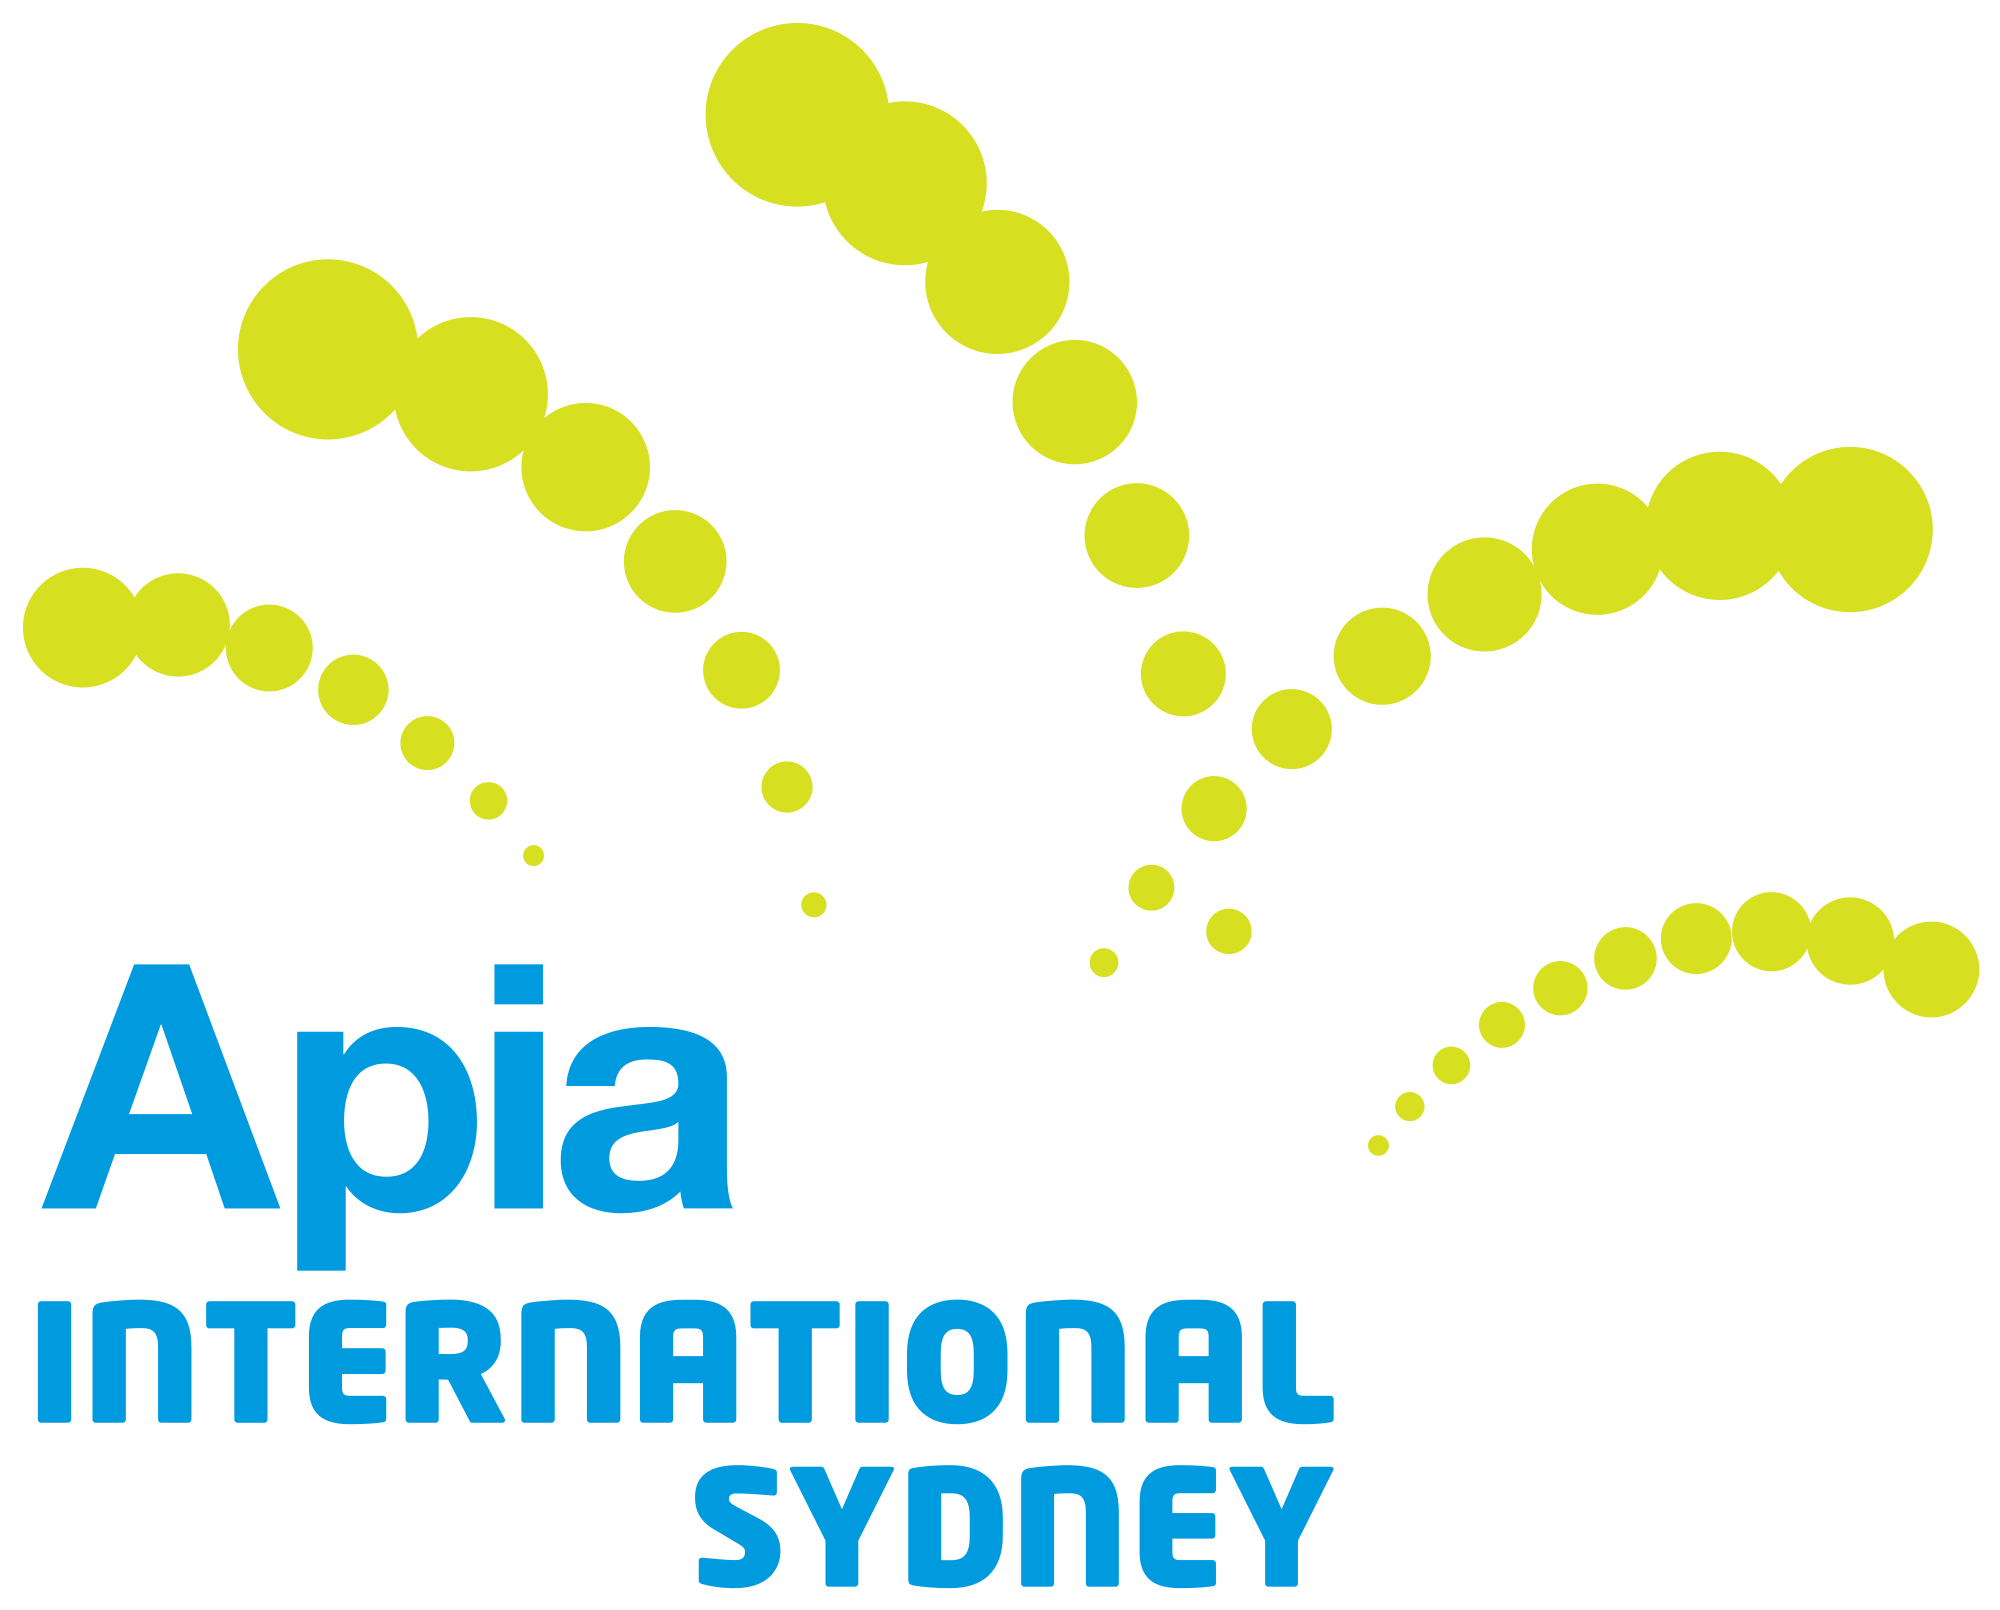 Sydney - Apia International Sydney